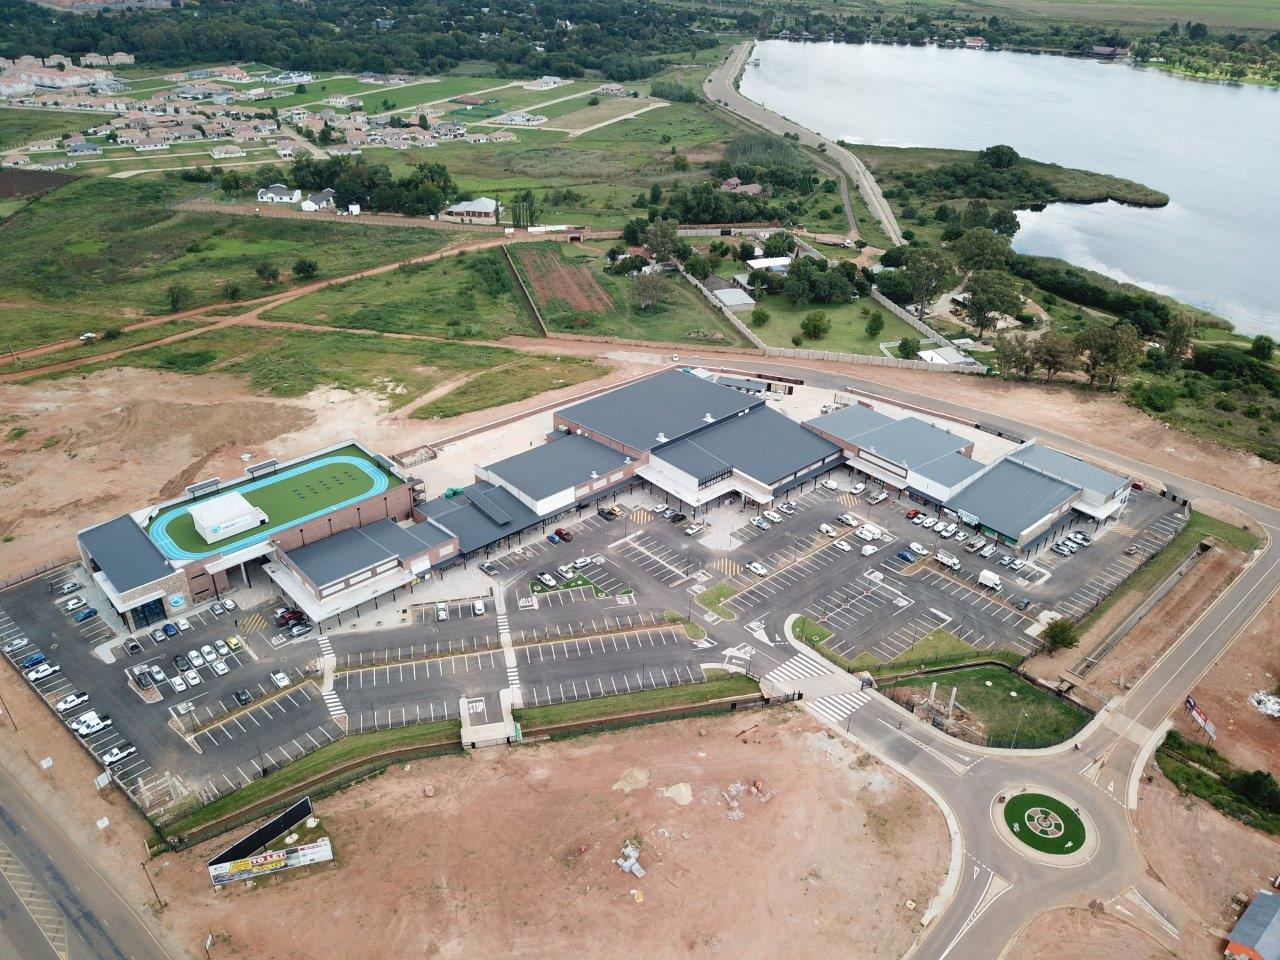 New Vyfhoek shopping centre in Potchefstroom